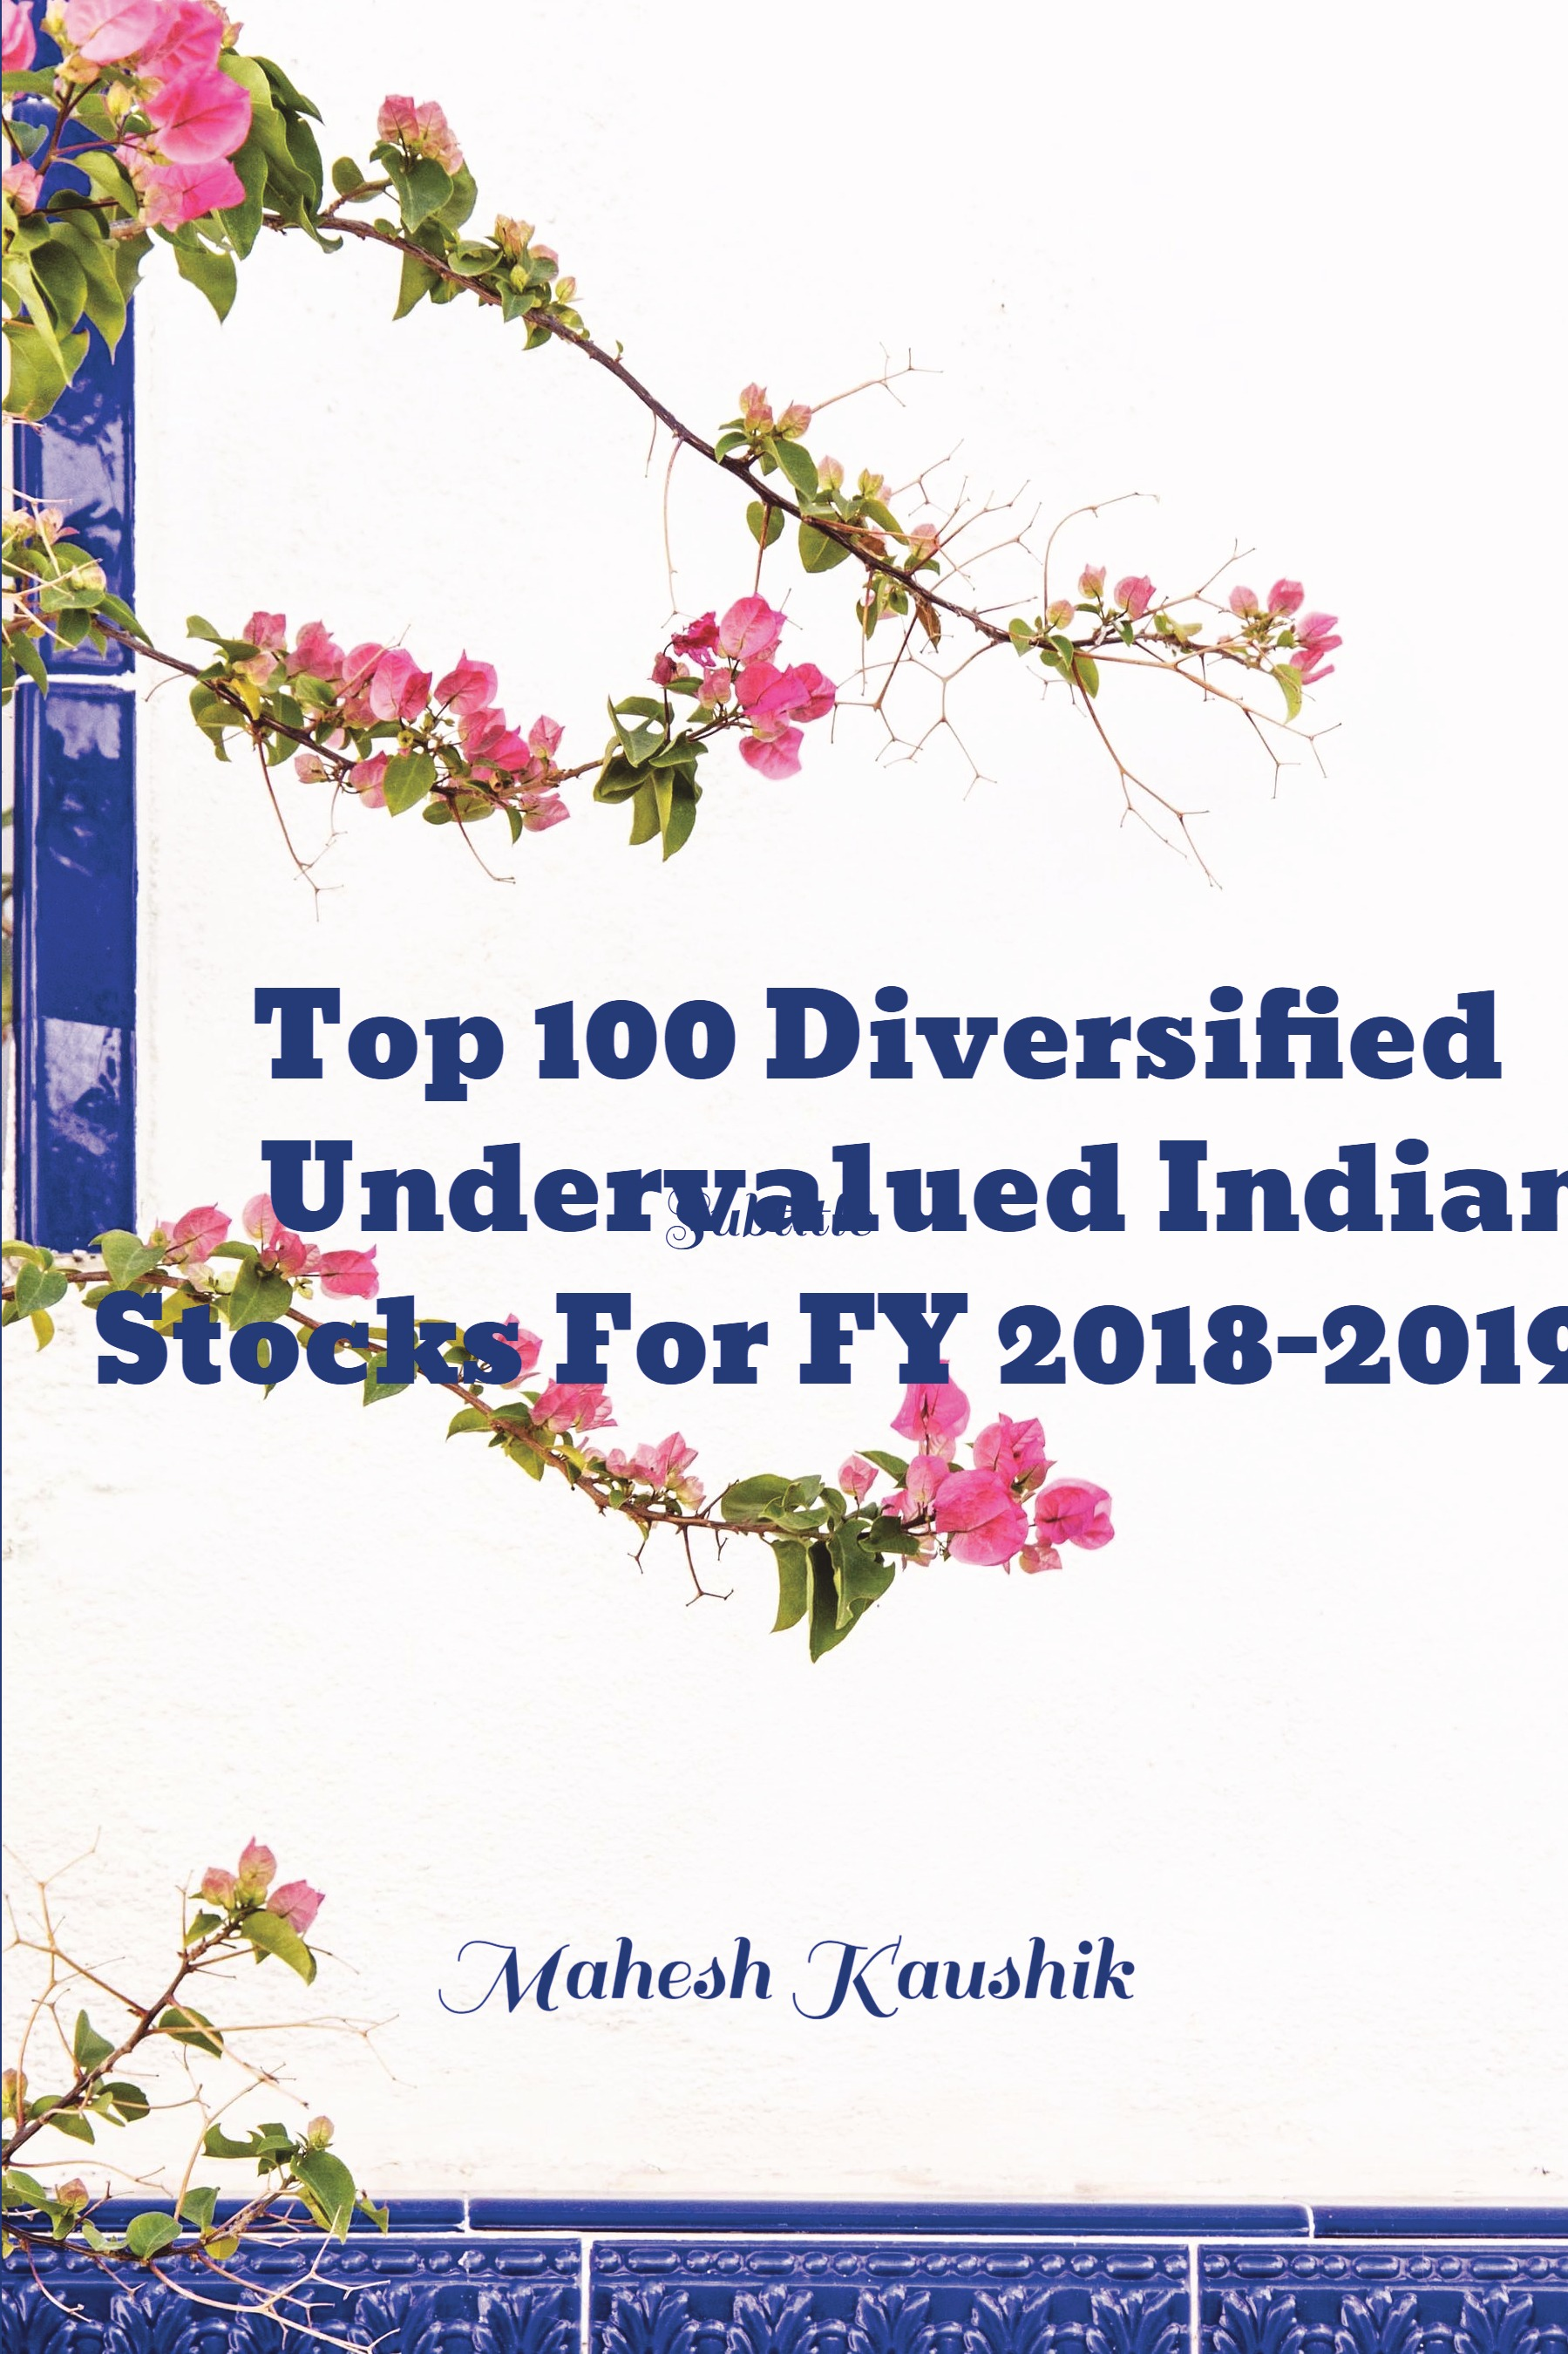 Top 100 Diversified Undervalued Indian Stocks For FY 2018